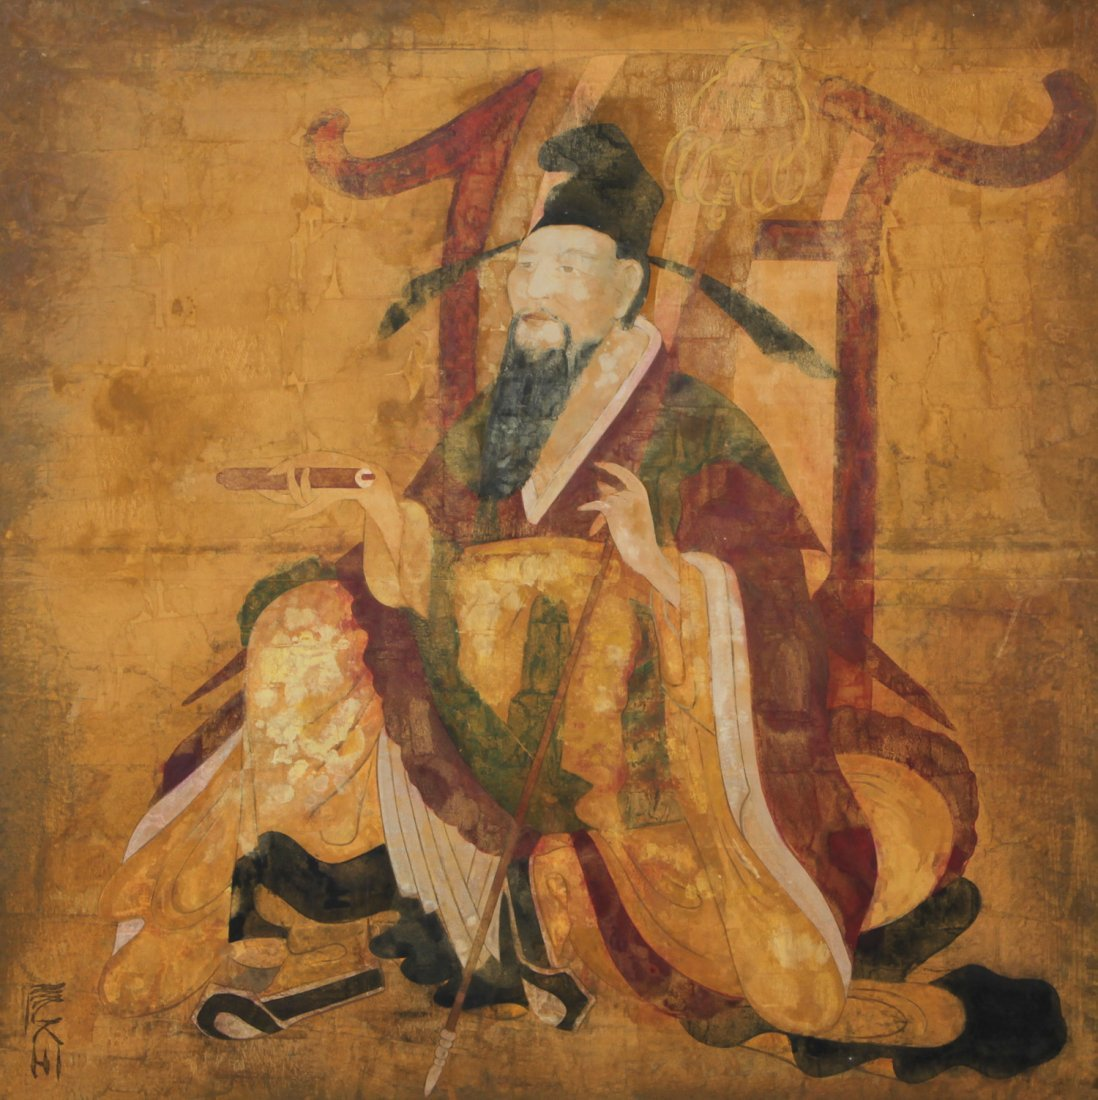 Large Scale Korean Dynastic Style Painting